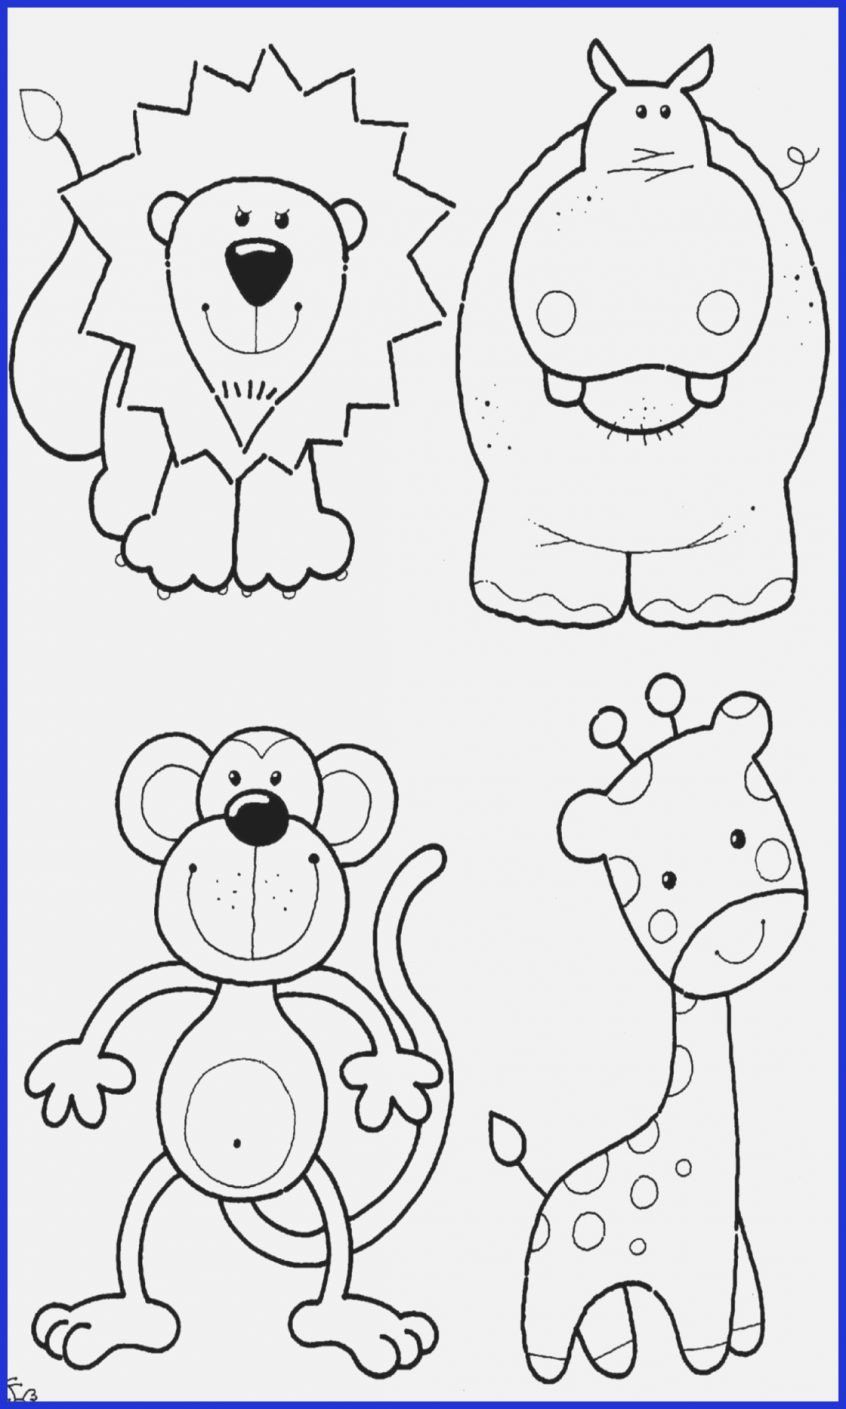 Printable Zoo Animal Coloring Pages Coloring Pages Coloring Page Pages Zoo Animals Book And In 2020 Zoo Animal Coloring Pages Monkey Coloring Pages Zoo Coloring Pages